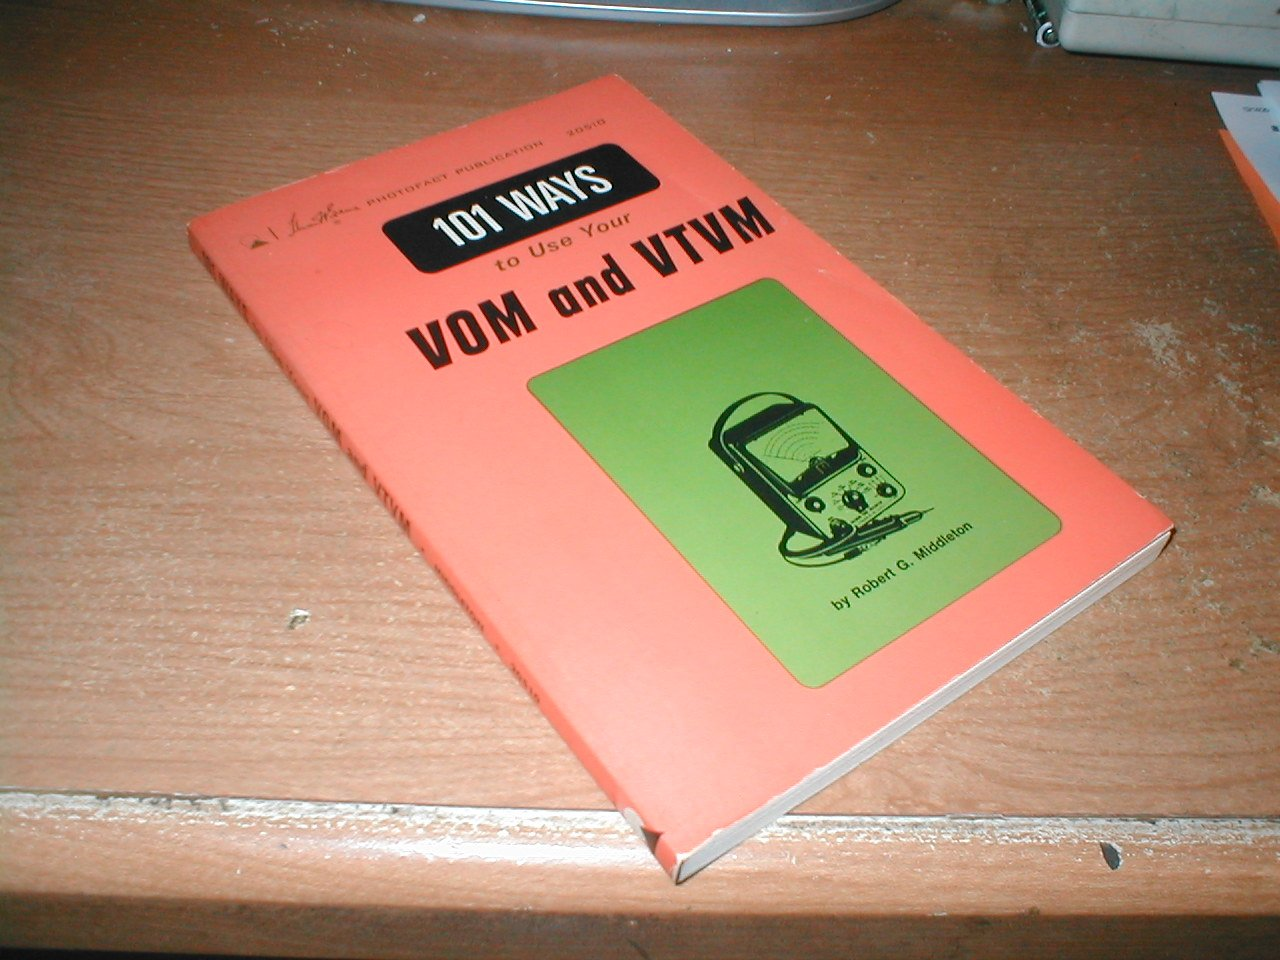 101 more ways to use your VOM and VTVM /by Robert G. Middleton: Robert  Gordon Middleton: Amazon.com: Books